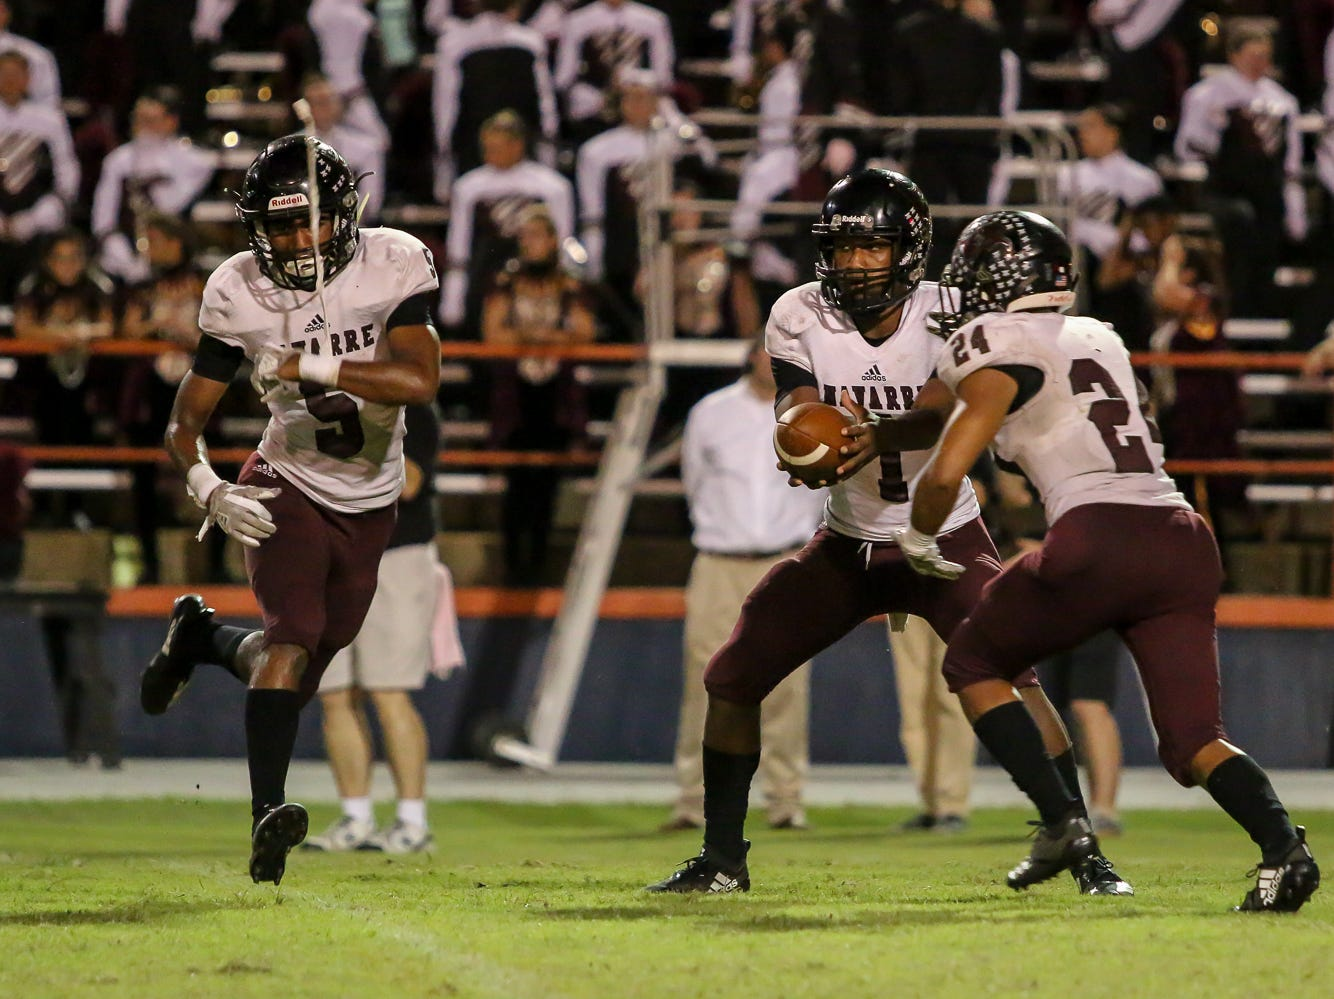 Navarre's Marlon Courtney III (1), Dante Wright (5), and Jaydin Antonio (24) run a fake against the Gators in the homecoming game at Escambia High School on Friday, October 5, 2018.